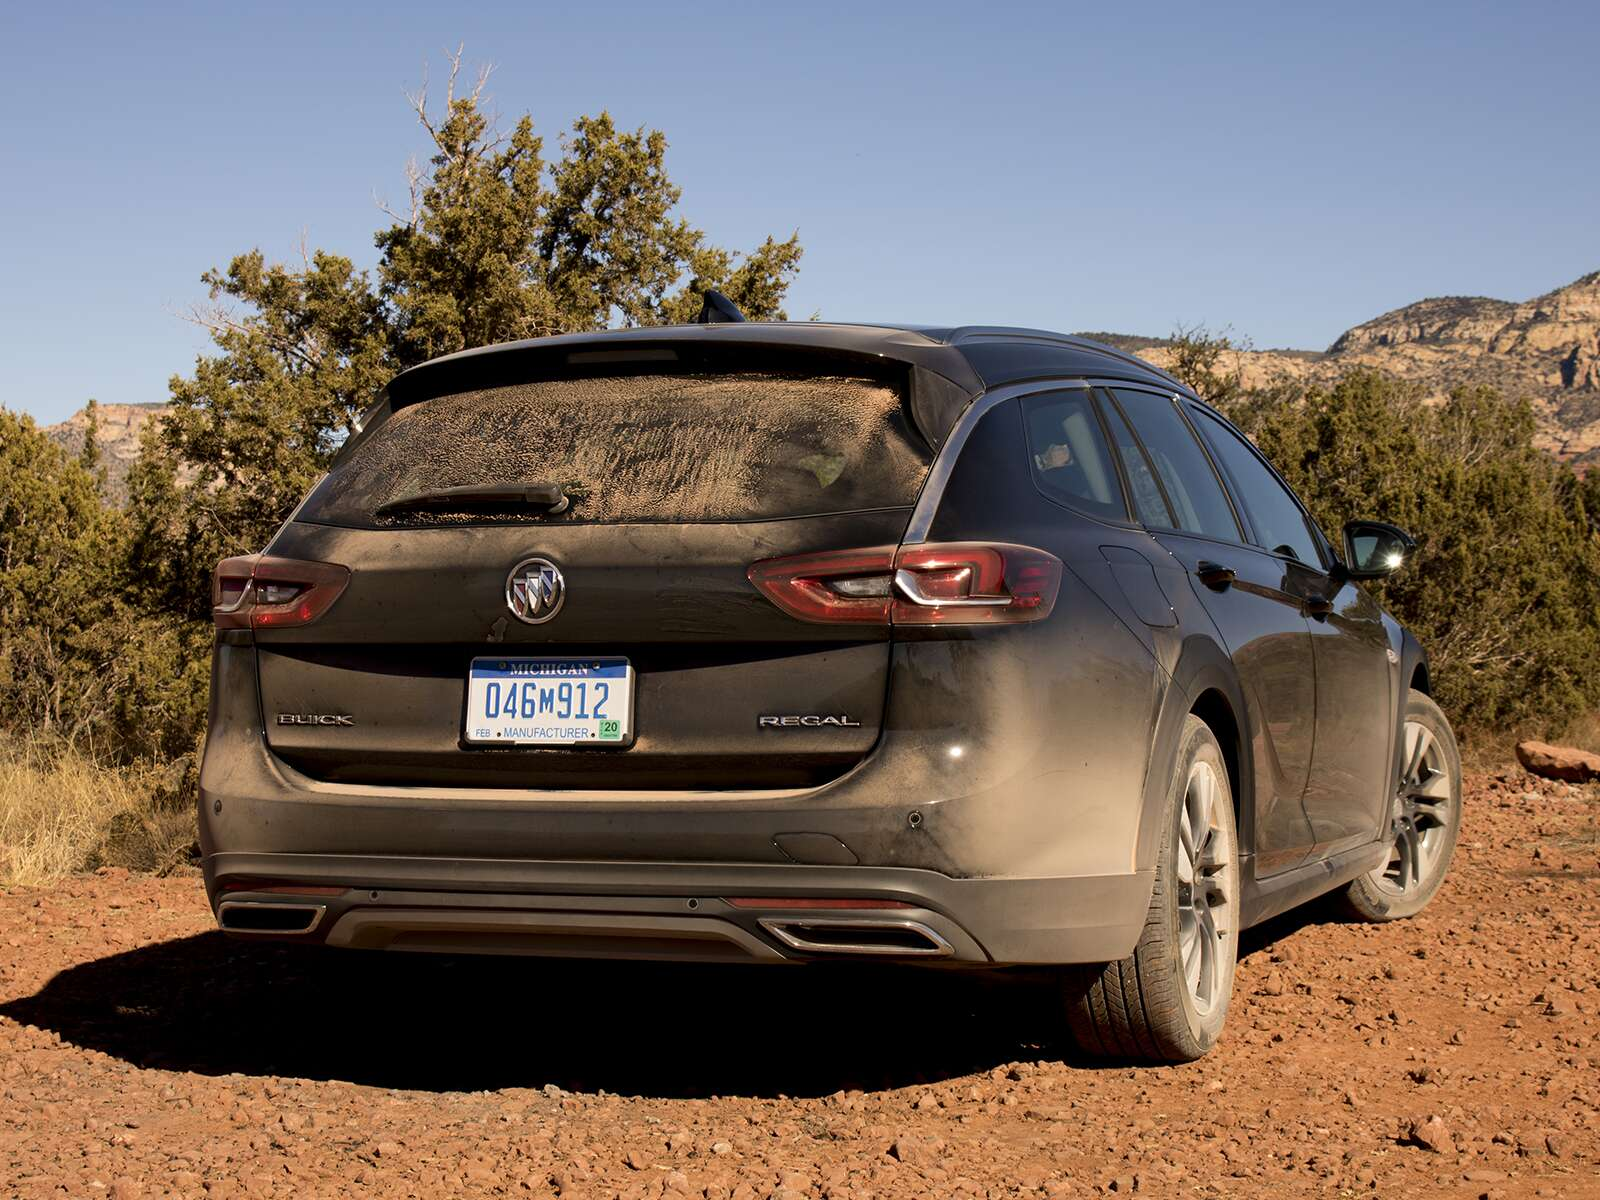 2018 Buick Regal TourX Review: Chasing the Golden Age of American ...